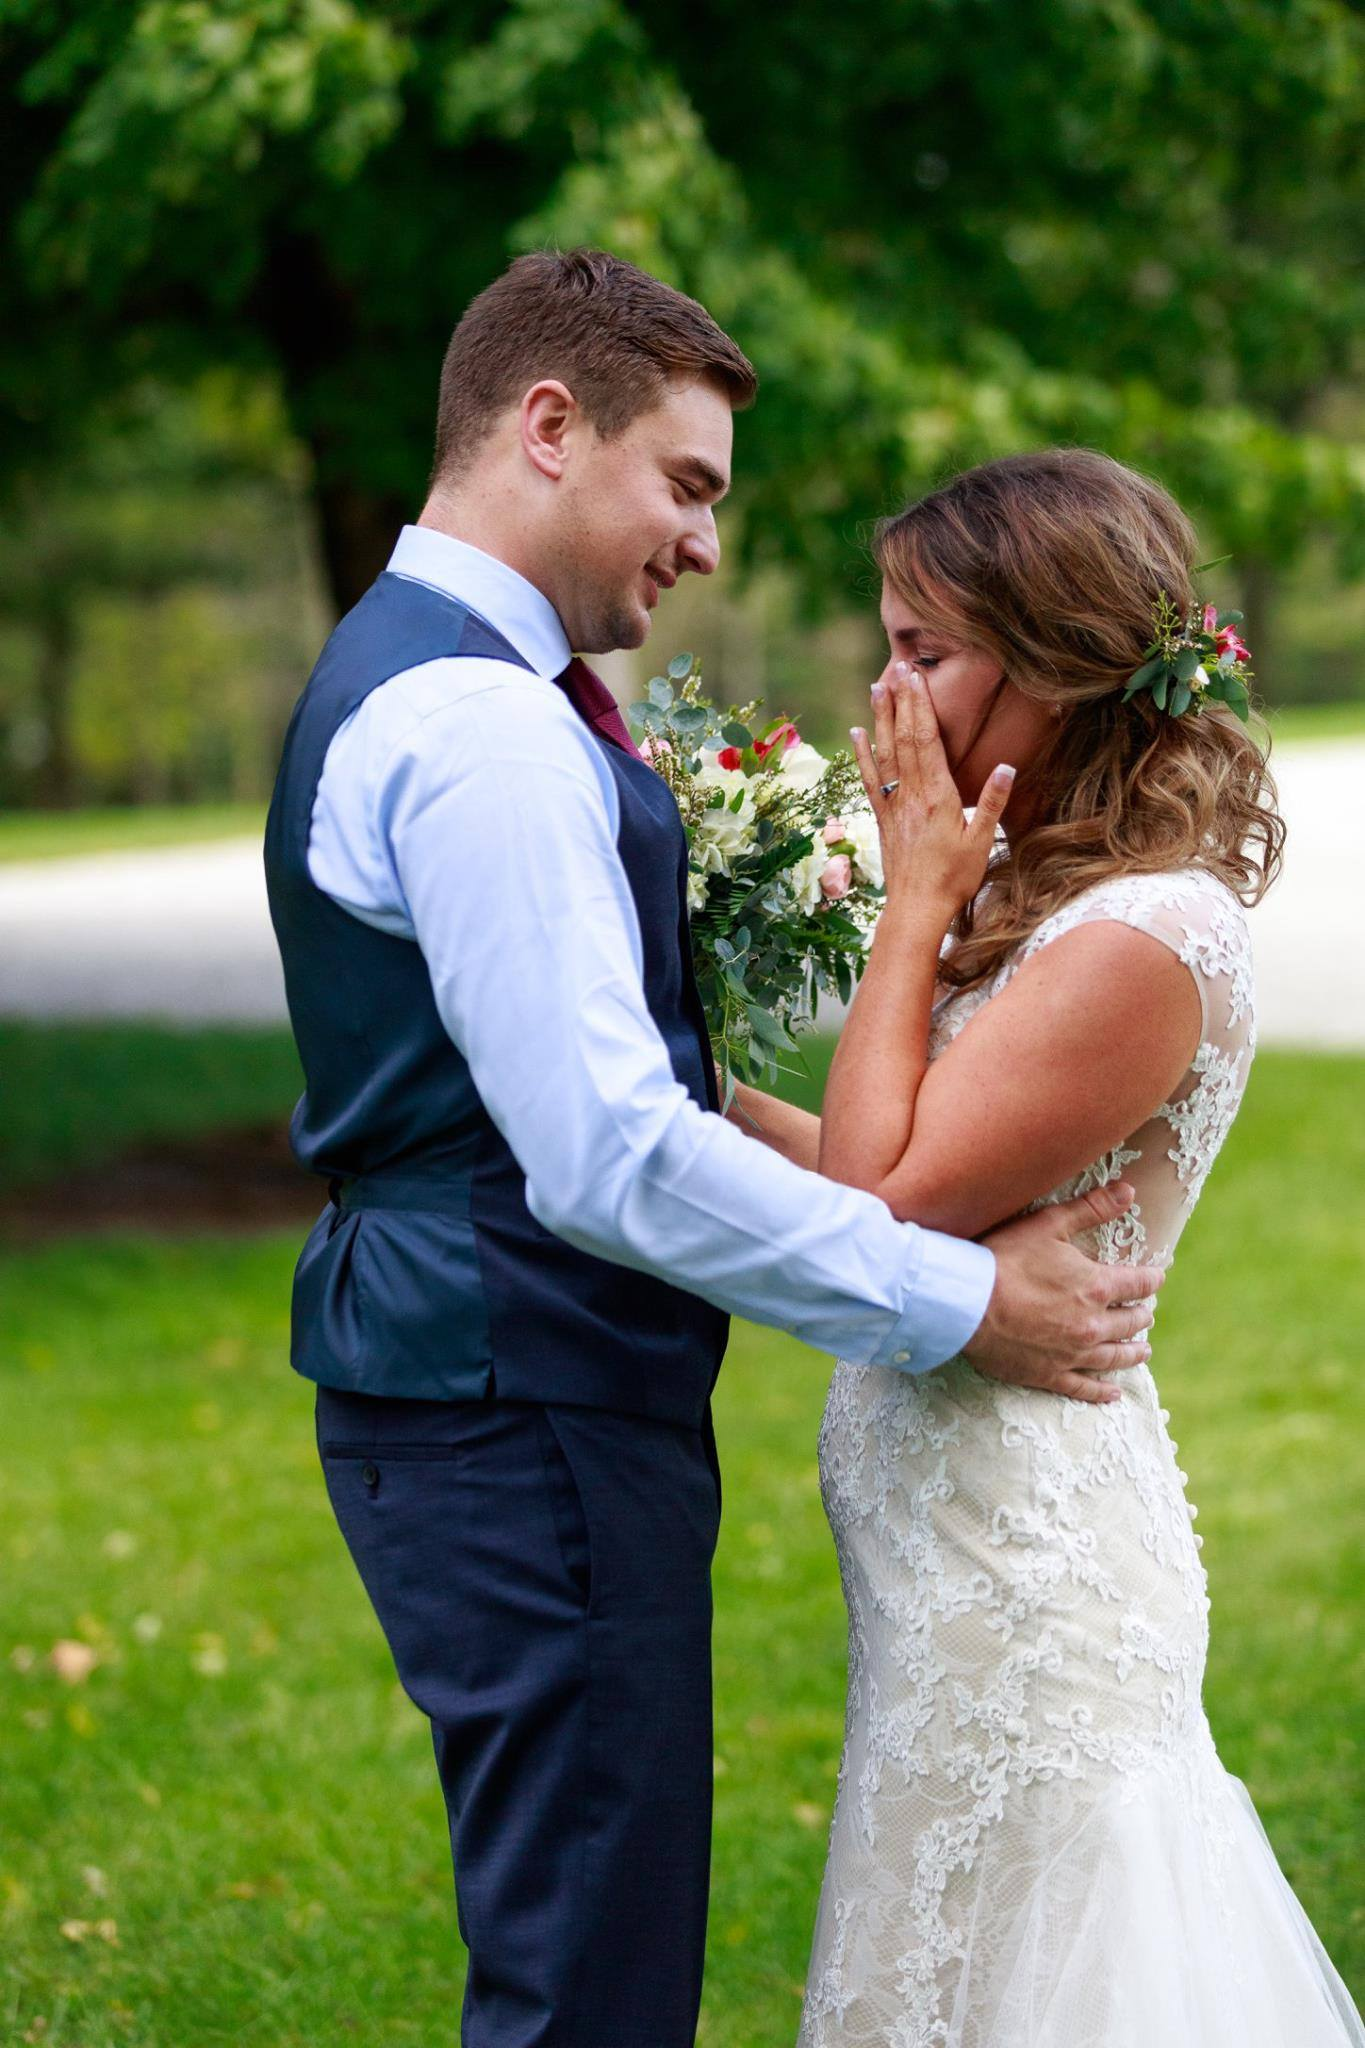 Bride and Groom's first look on their wedding day